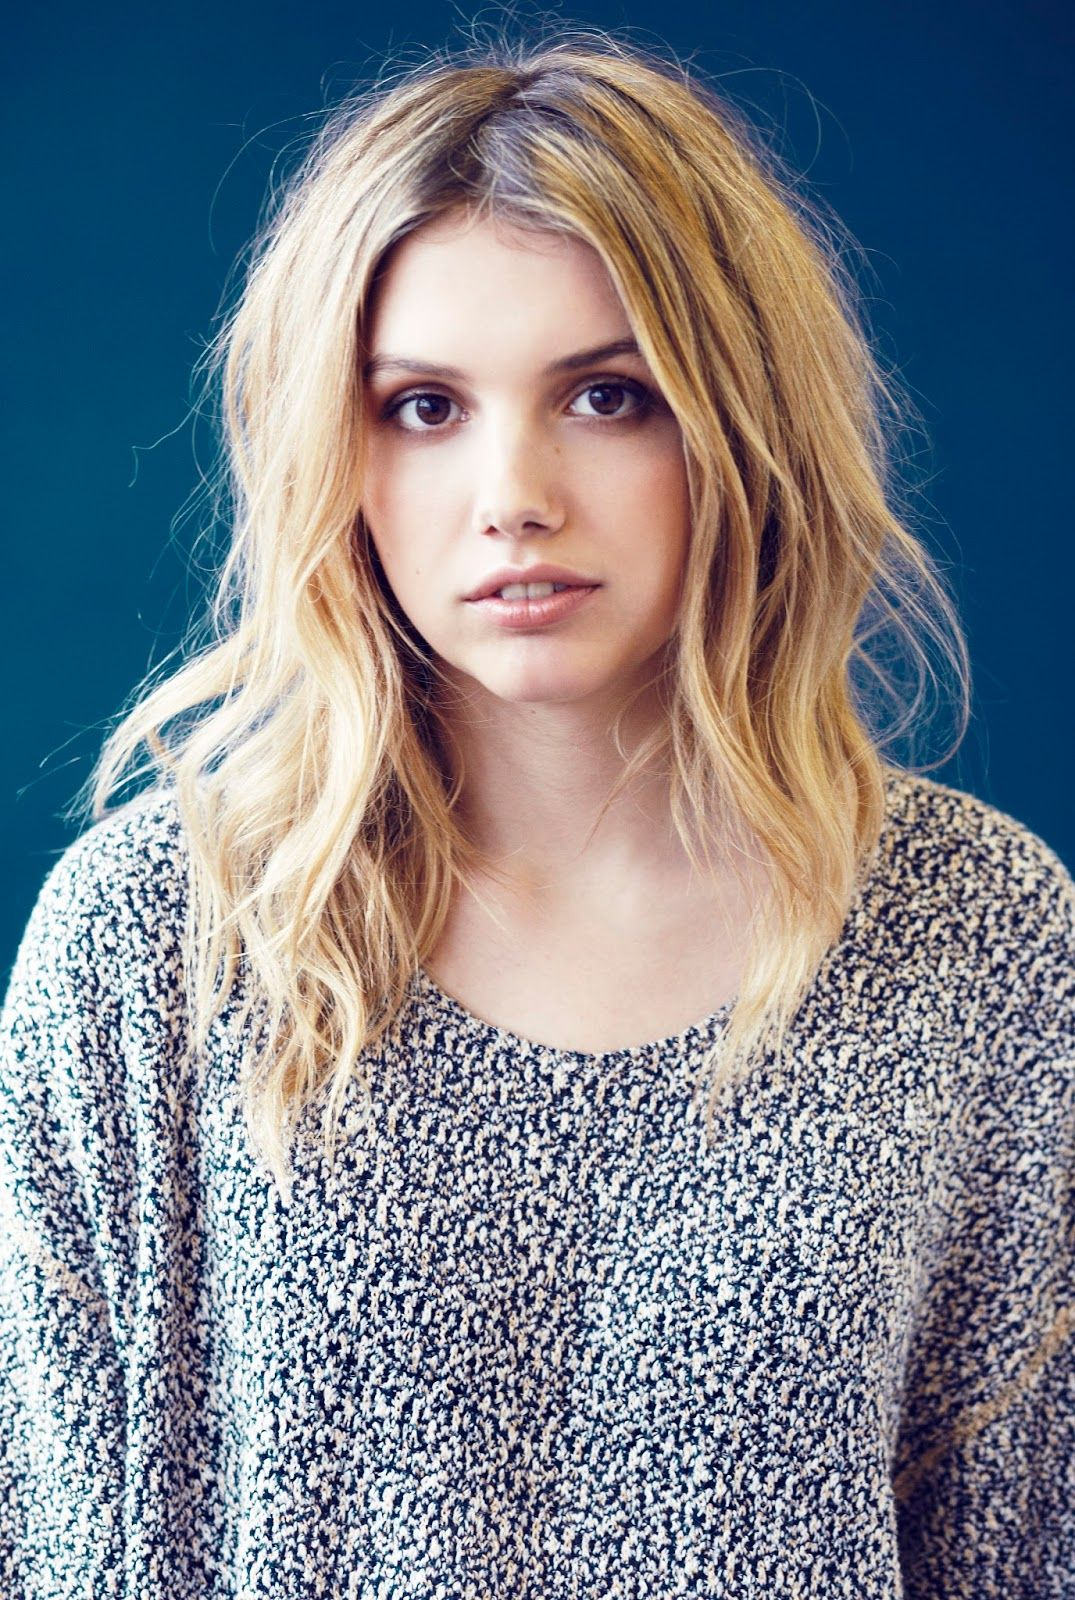 Hannah Murray nudes (92 pictures) Feet, iCloud, lingerie